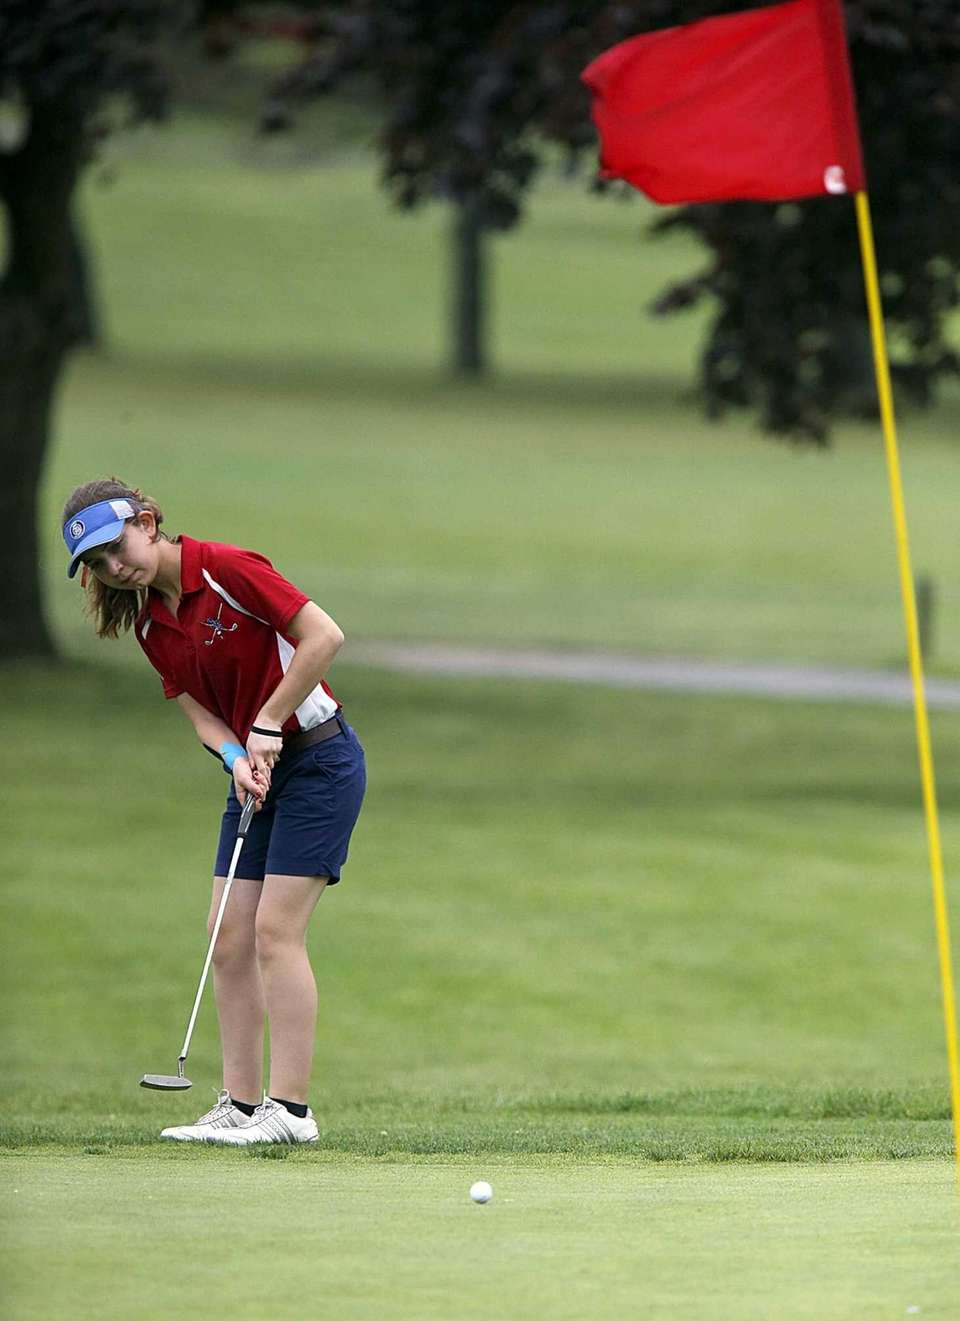 Smithown East's Peyton Greco with a long putt